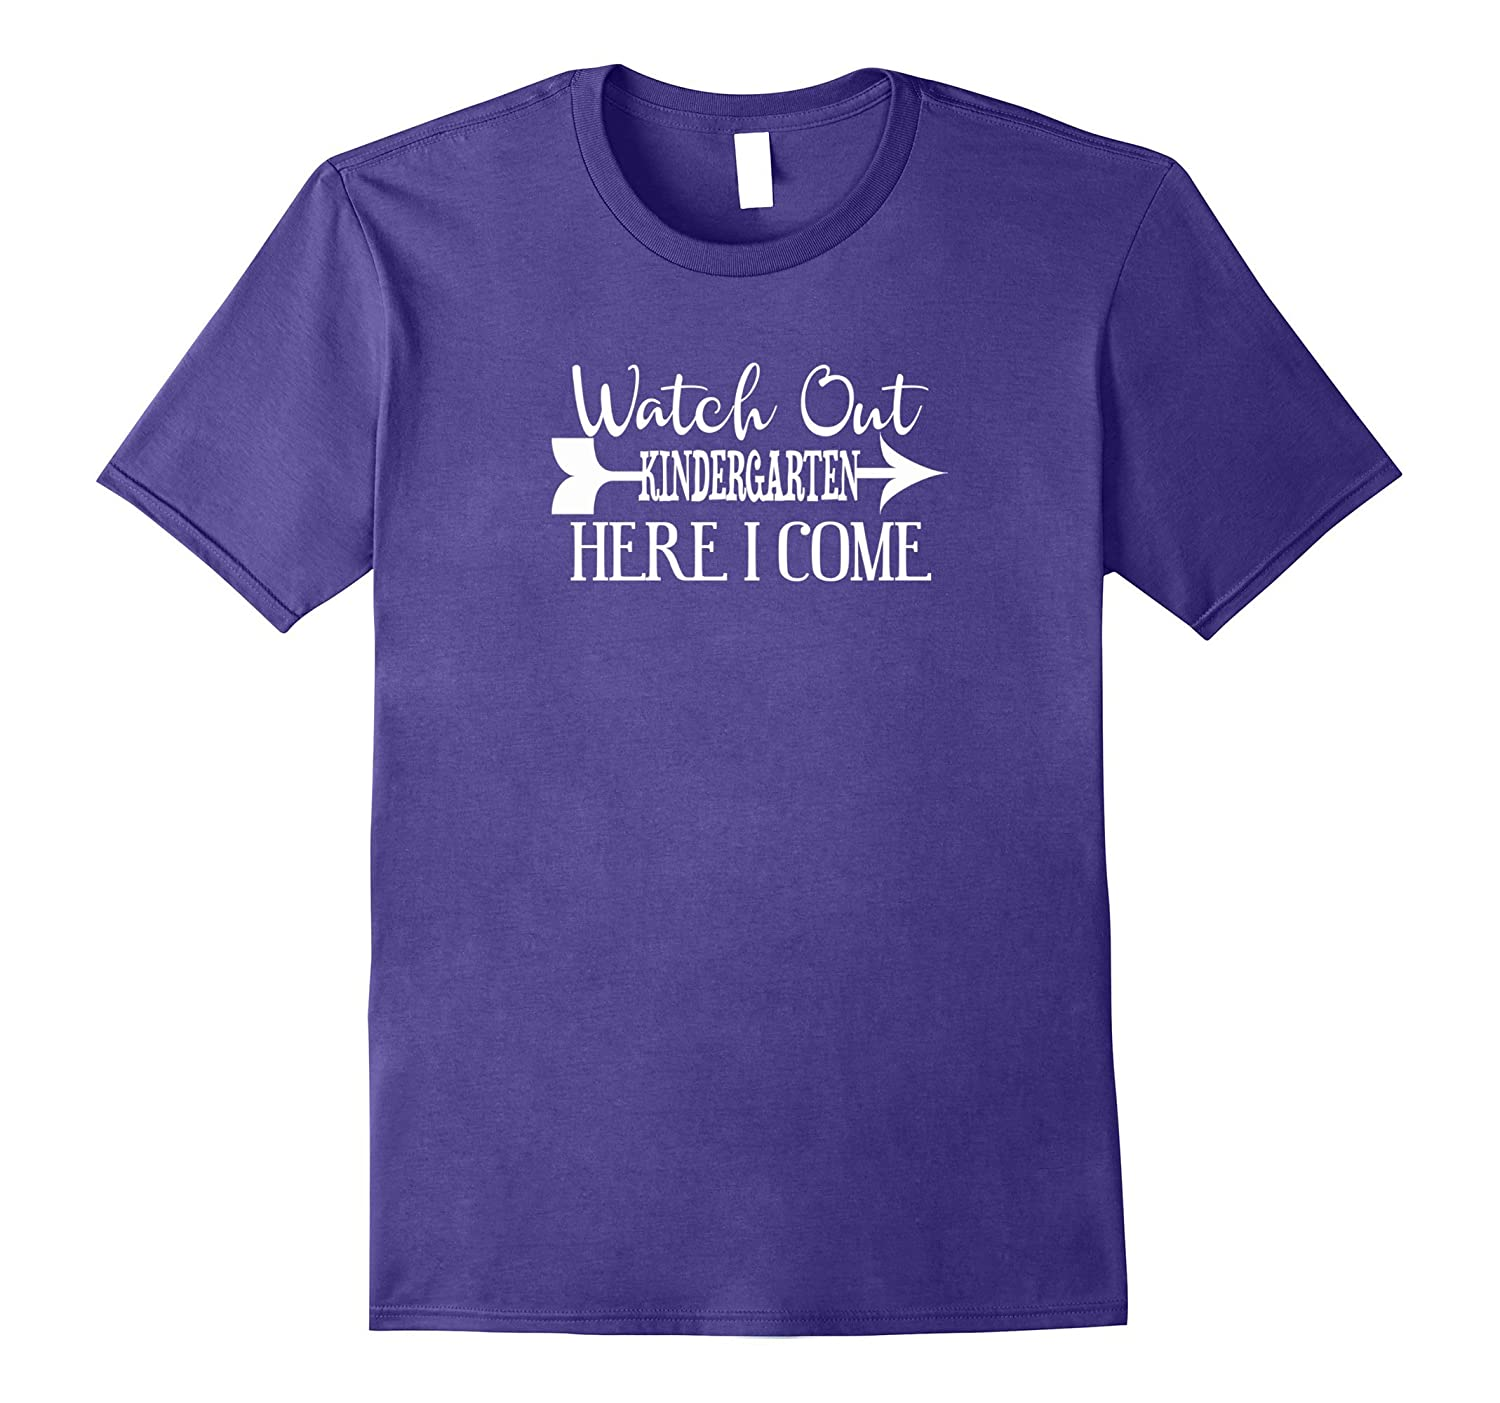 Watch Out Kindergarten Here I Come Tshirt First Day Schol-Art